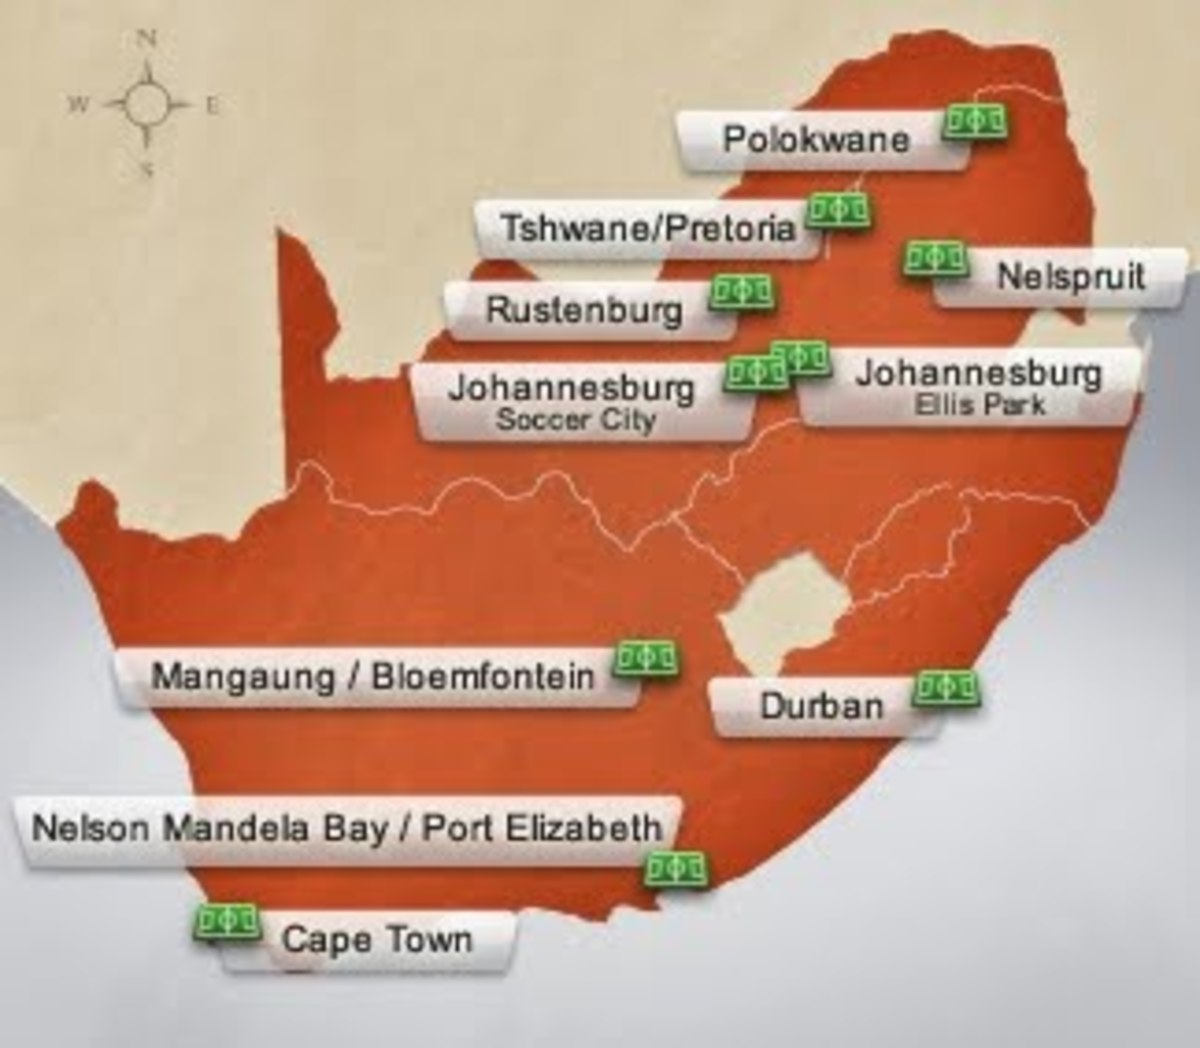 The provinces throughout South Africa where the stadiums for the World Cup will be held fro June 11 to July 11